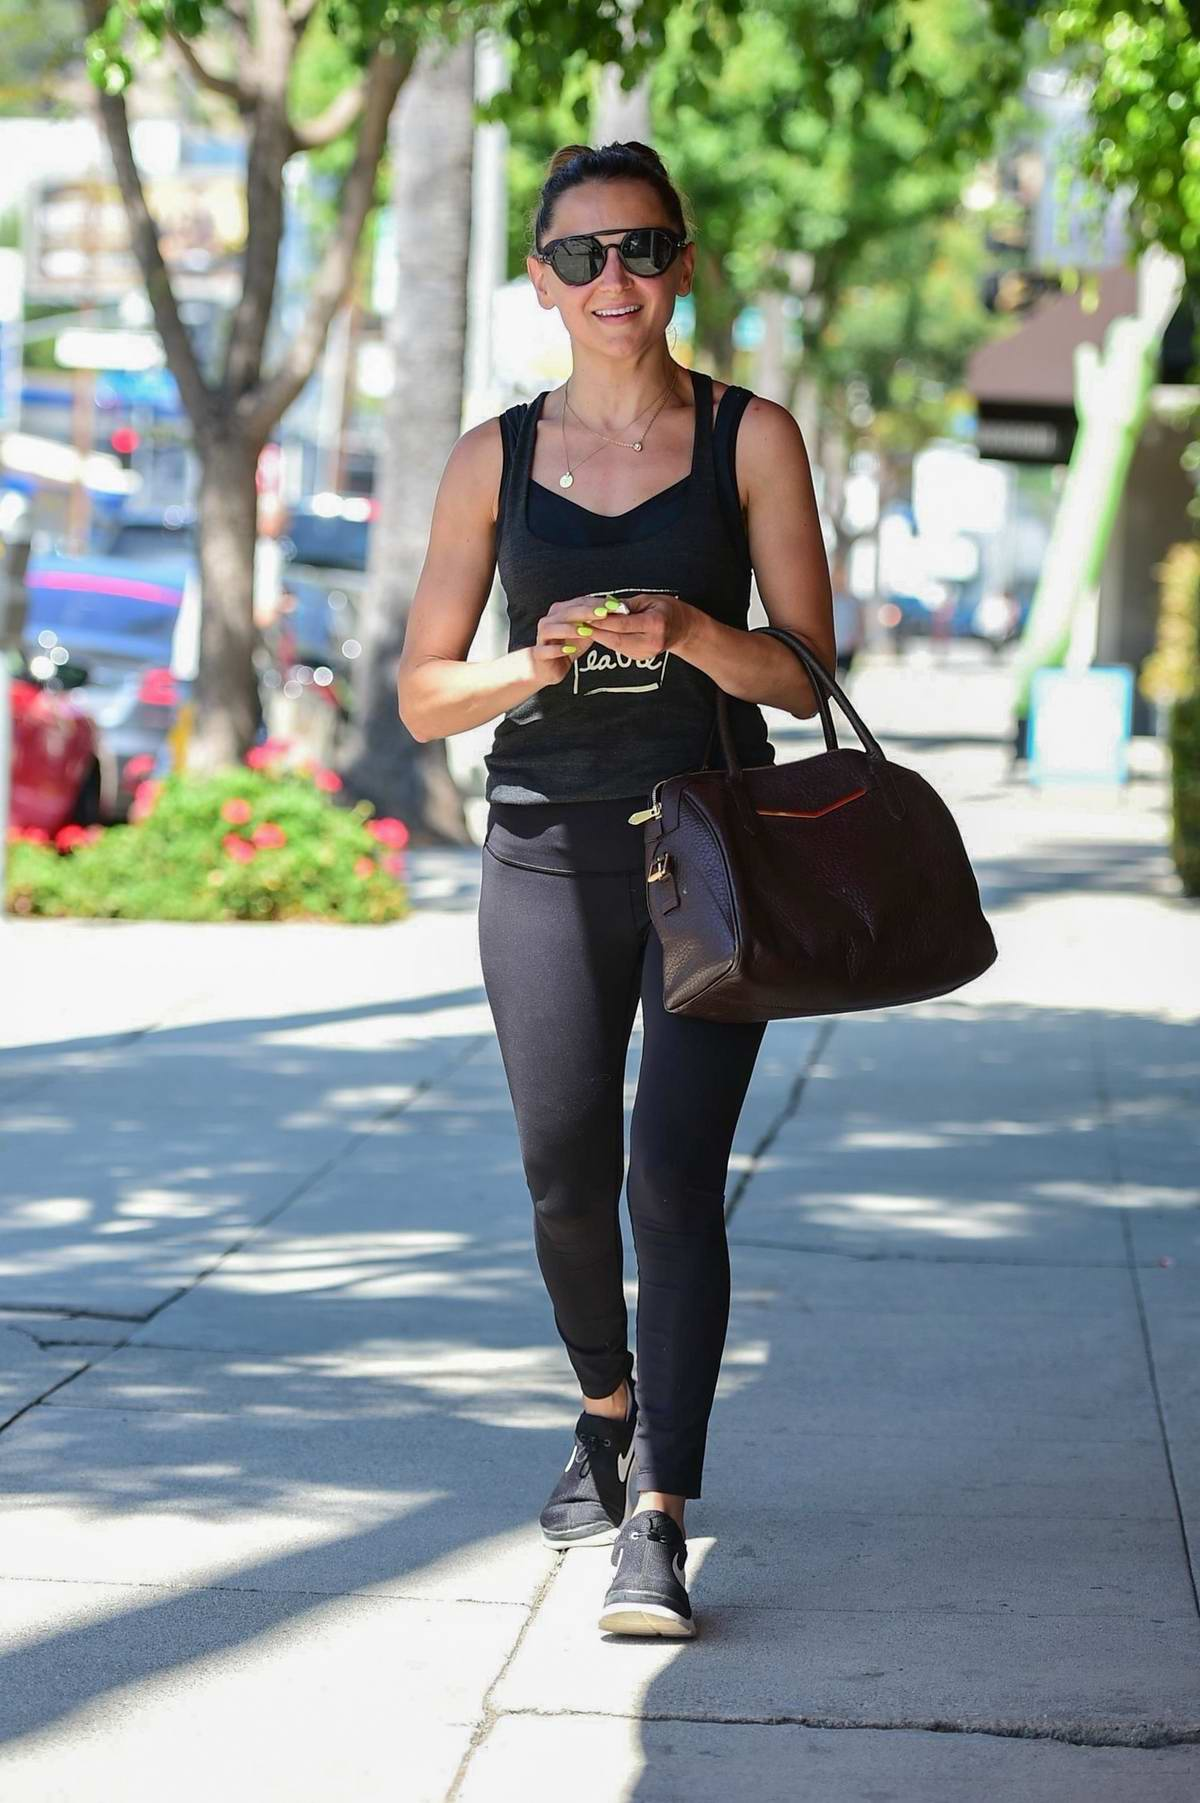 Rachael Leigh Cook sports a black tank top with matching leggings and Nike trainer as she leaves a gym in Studio City, Los Angeles